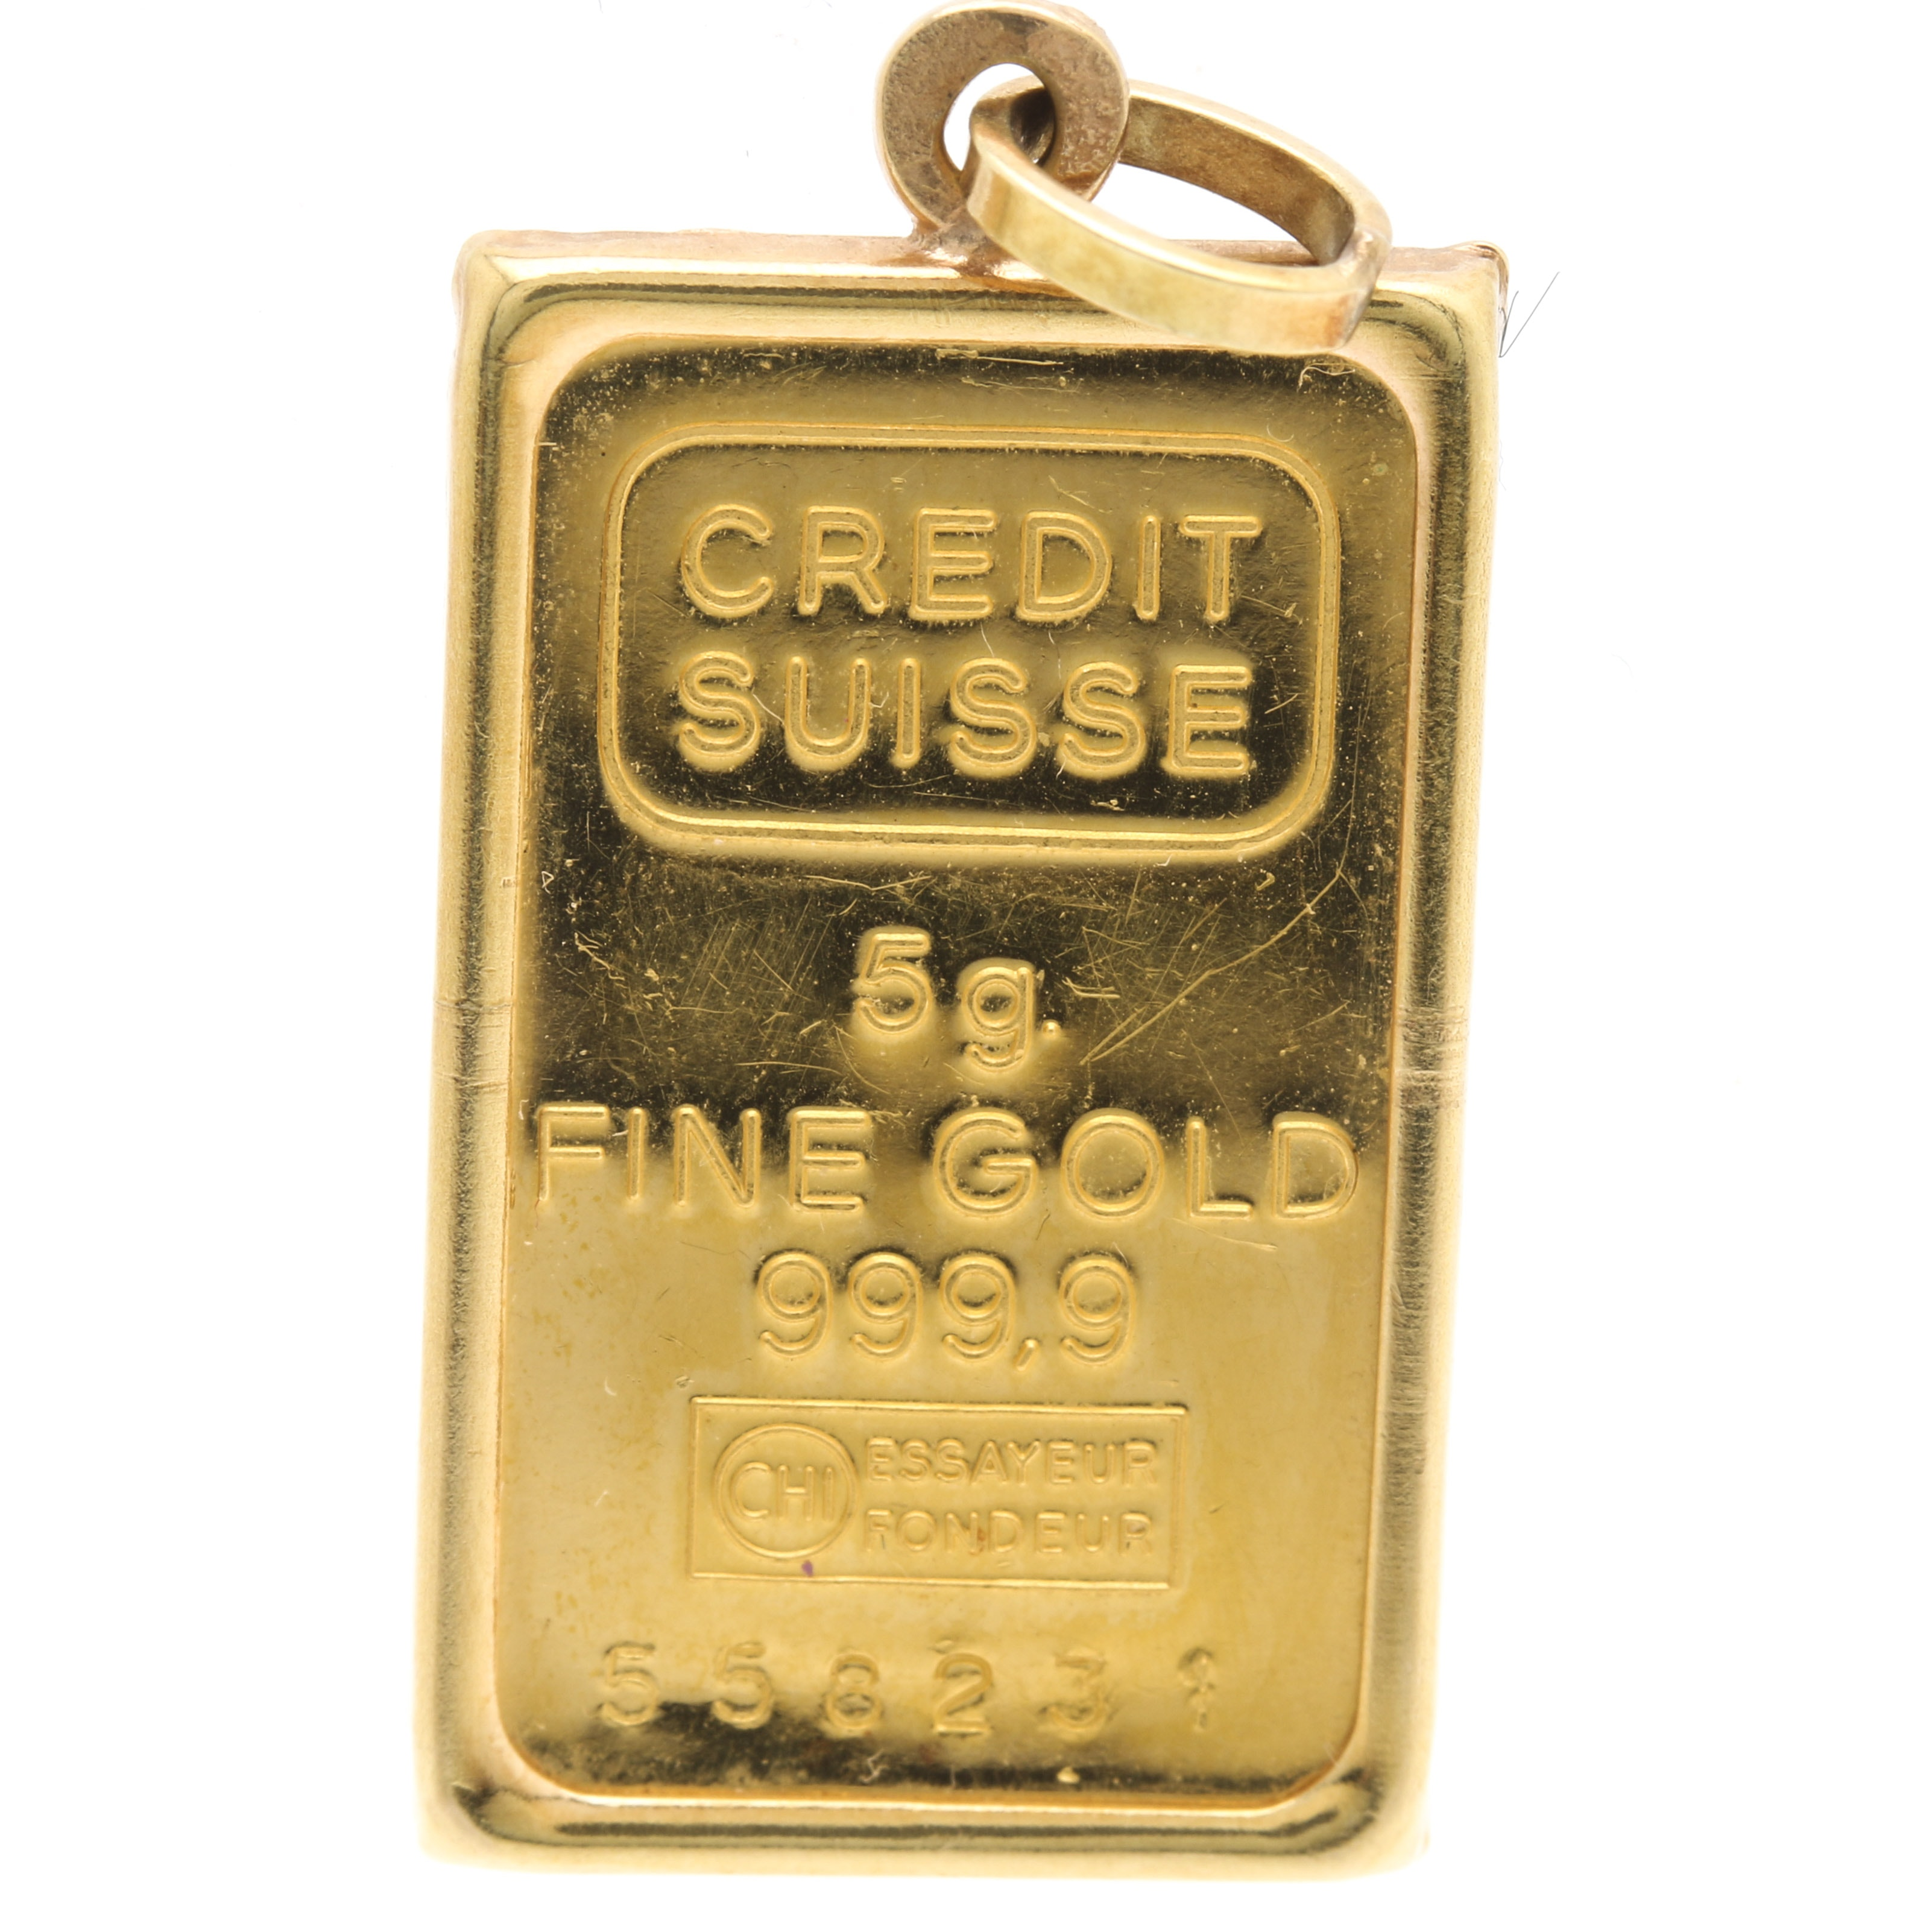 18K, 14K and 999.9 Yellow Gold Suisse Credit Charm